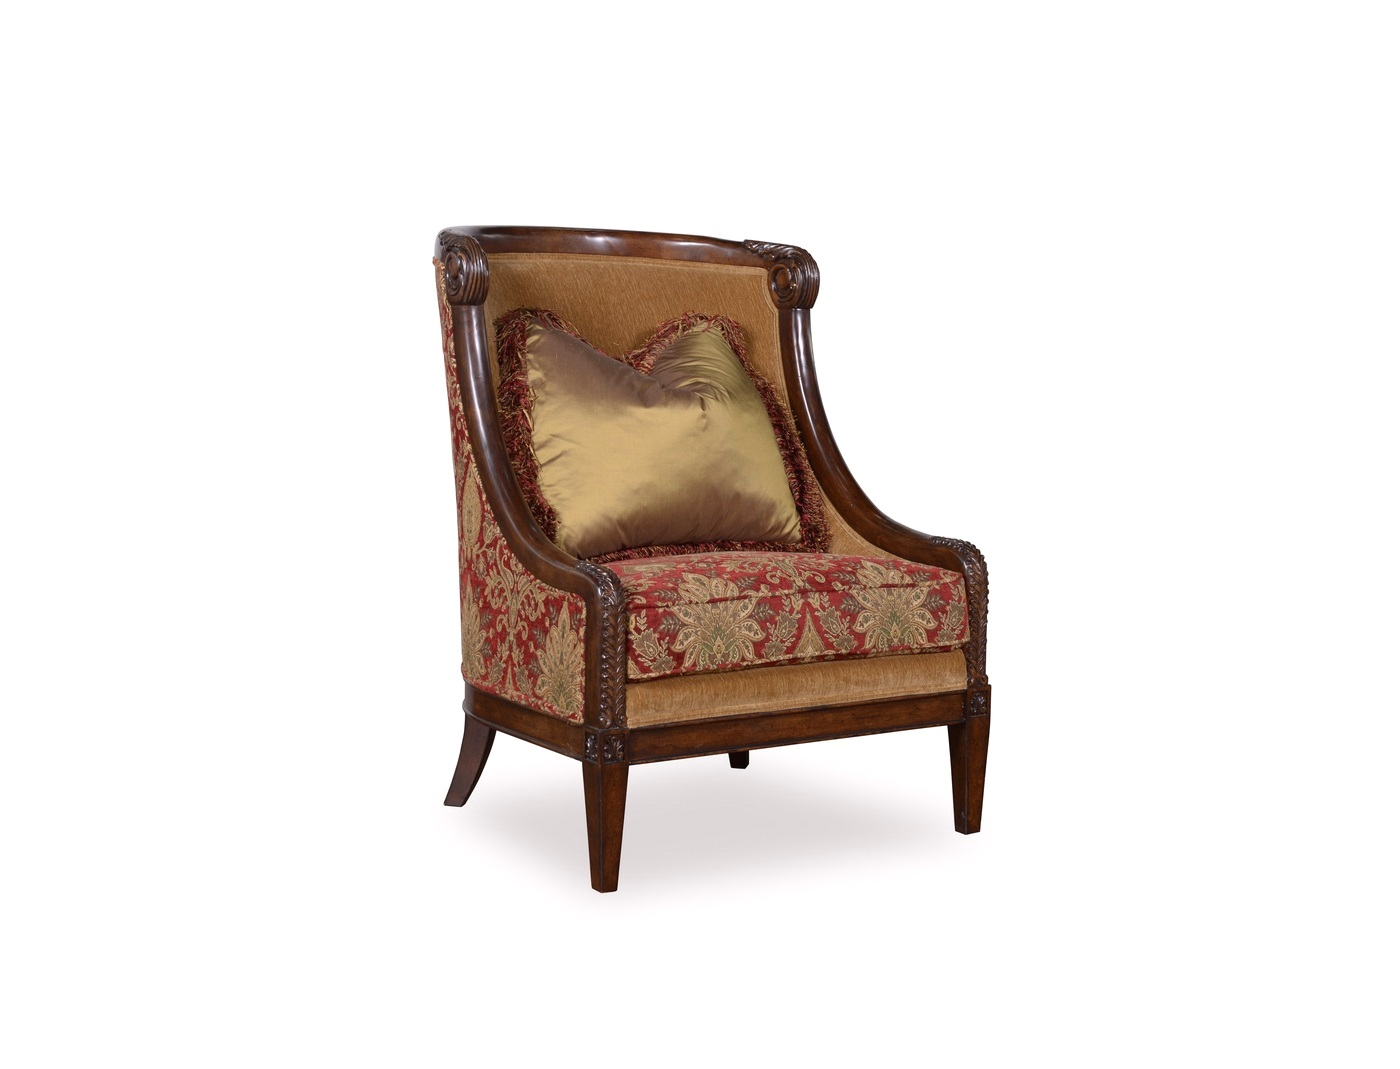 damask accent chair leather dining chairs walnut legs giovanna caramel with red and wood accents